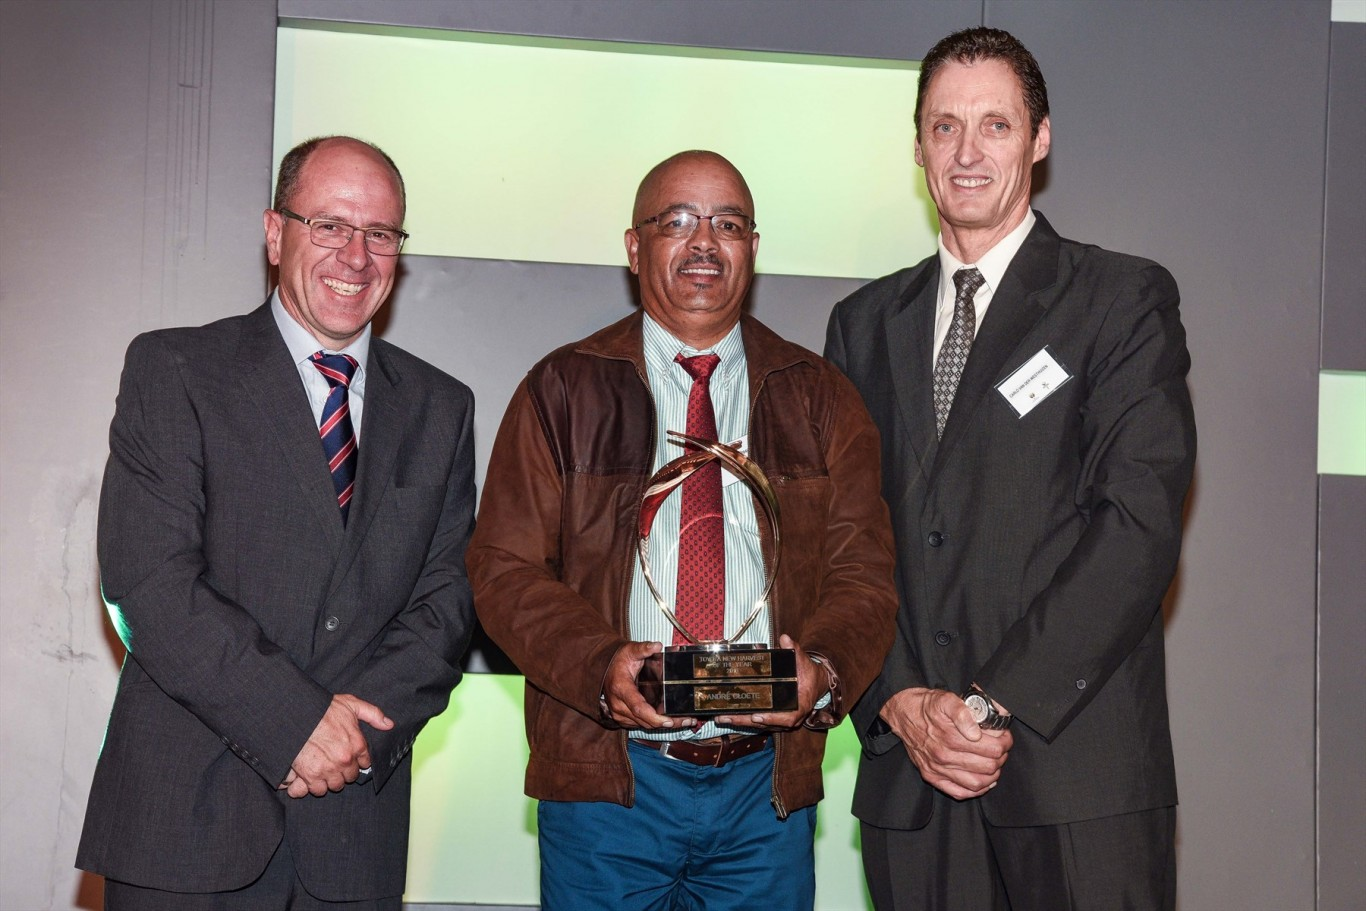 Toyota presents the Young Farmer and New Harvest Award